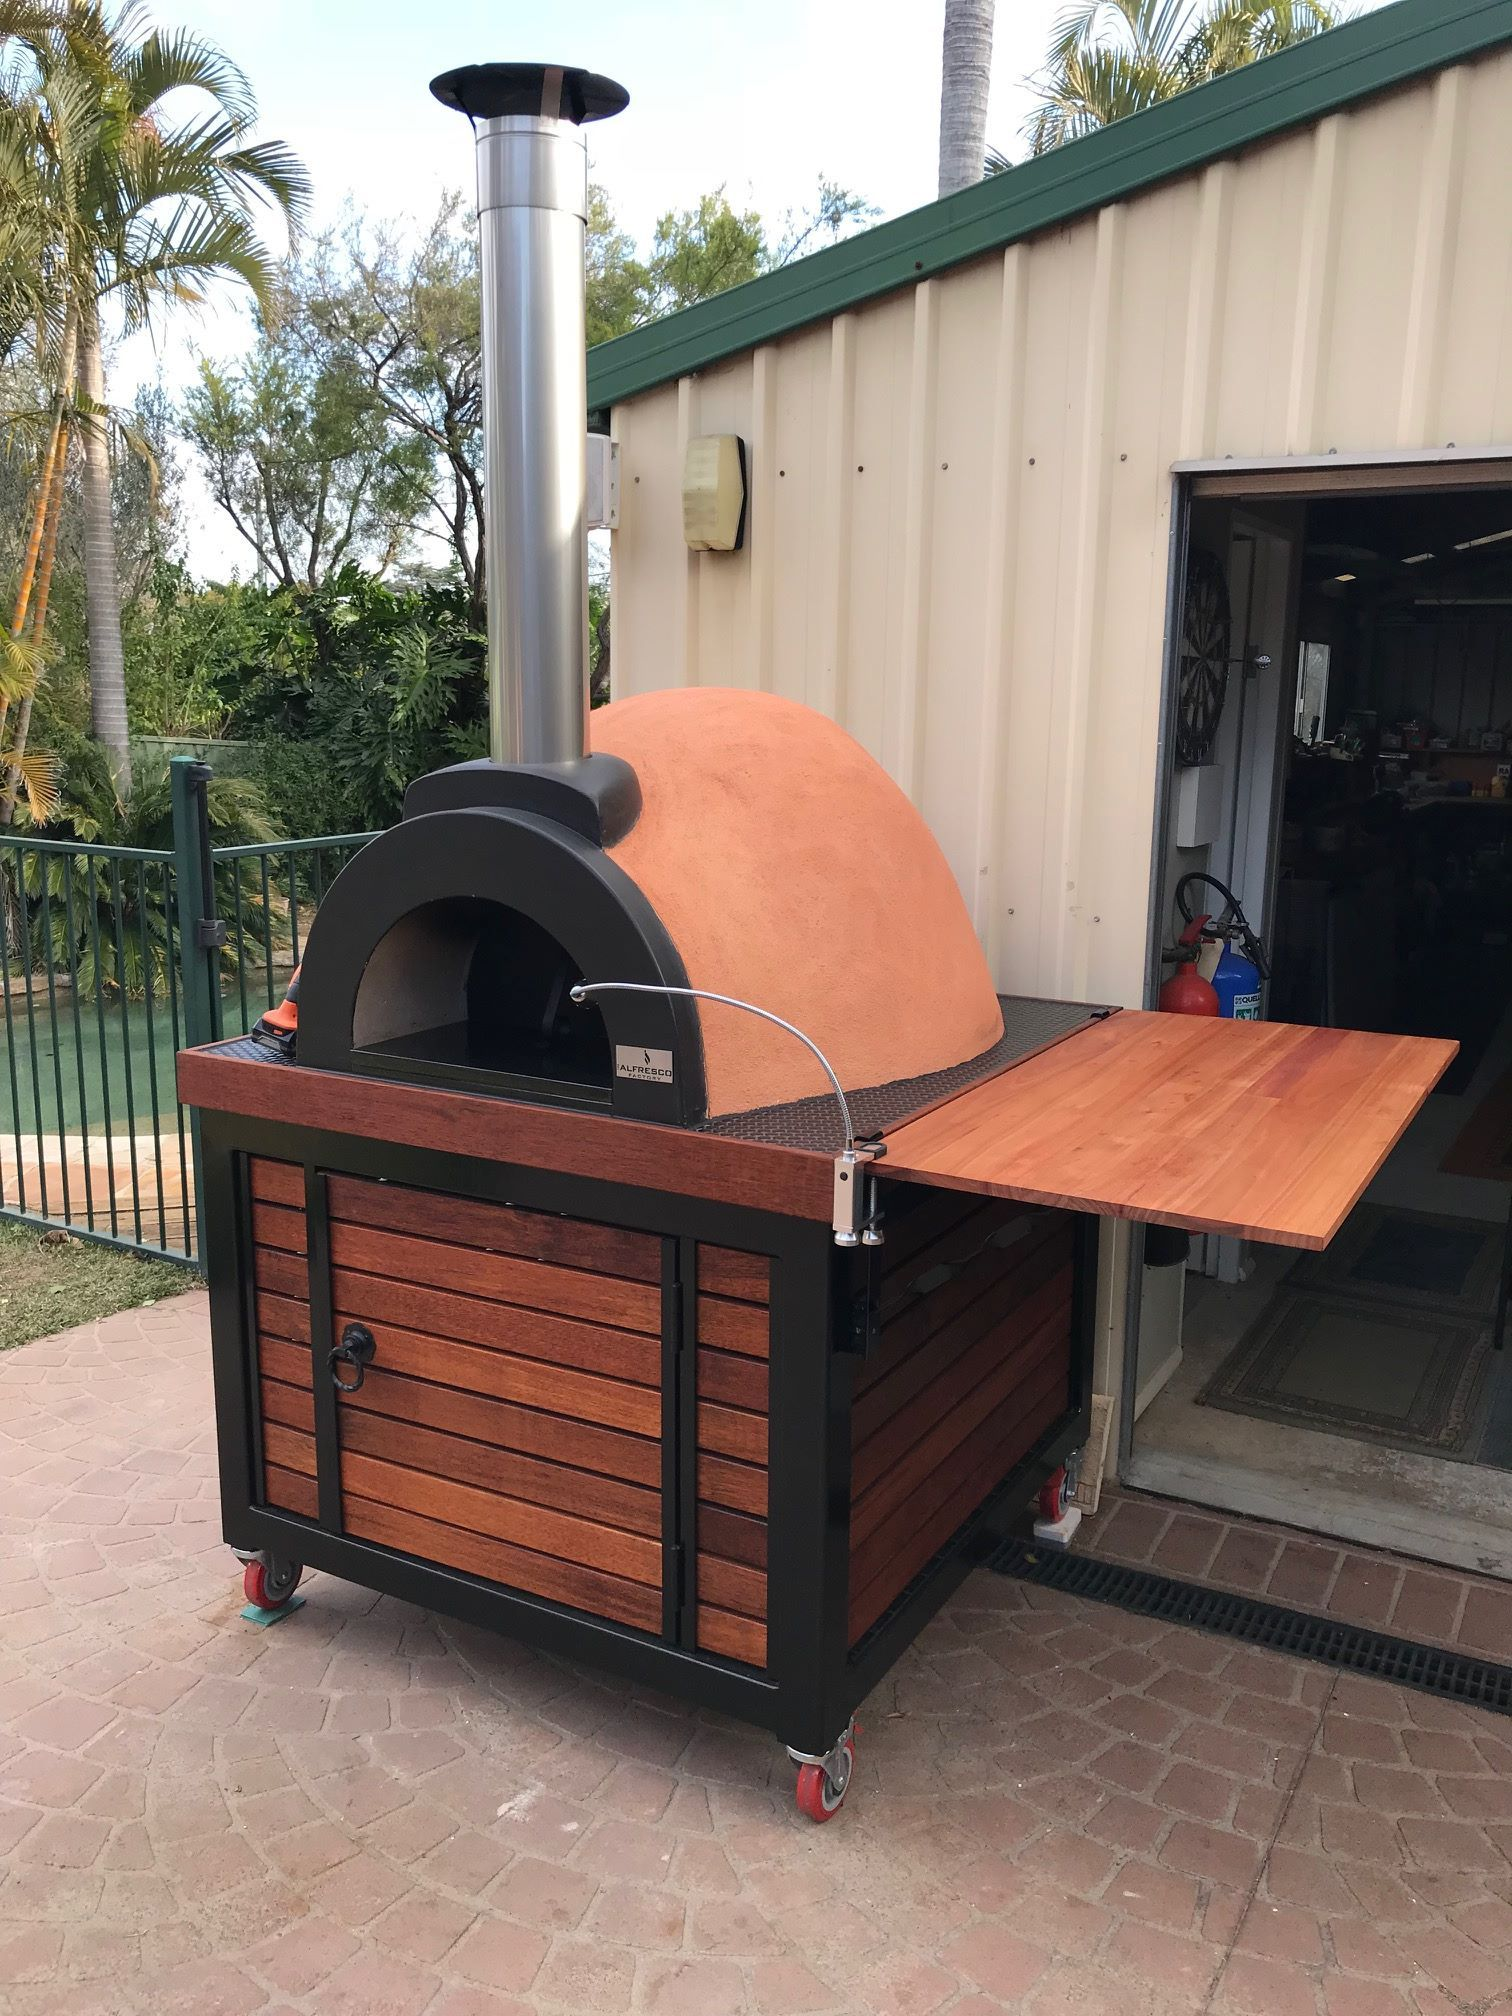 The Alfresco Factory Ovens Can Be Custom Made To Fit Your Needs